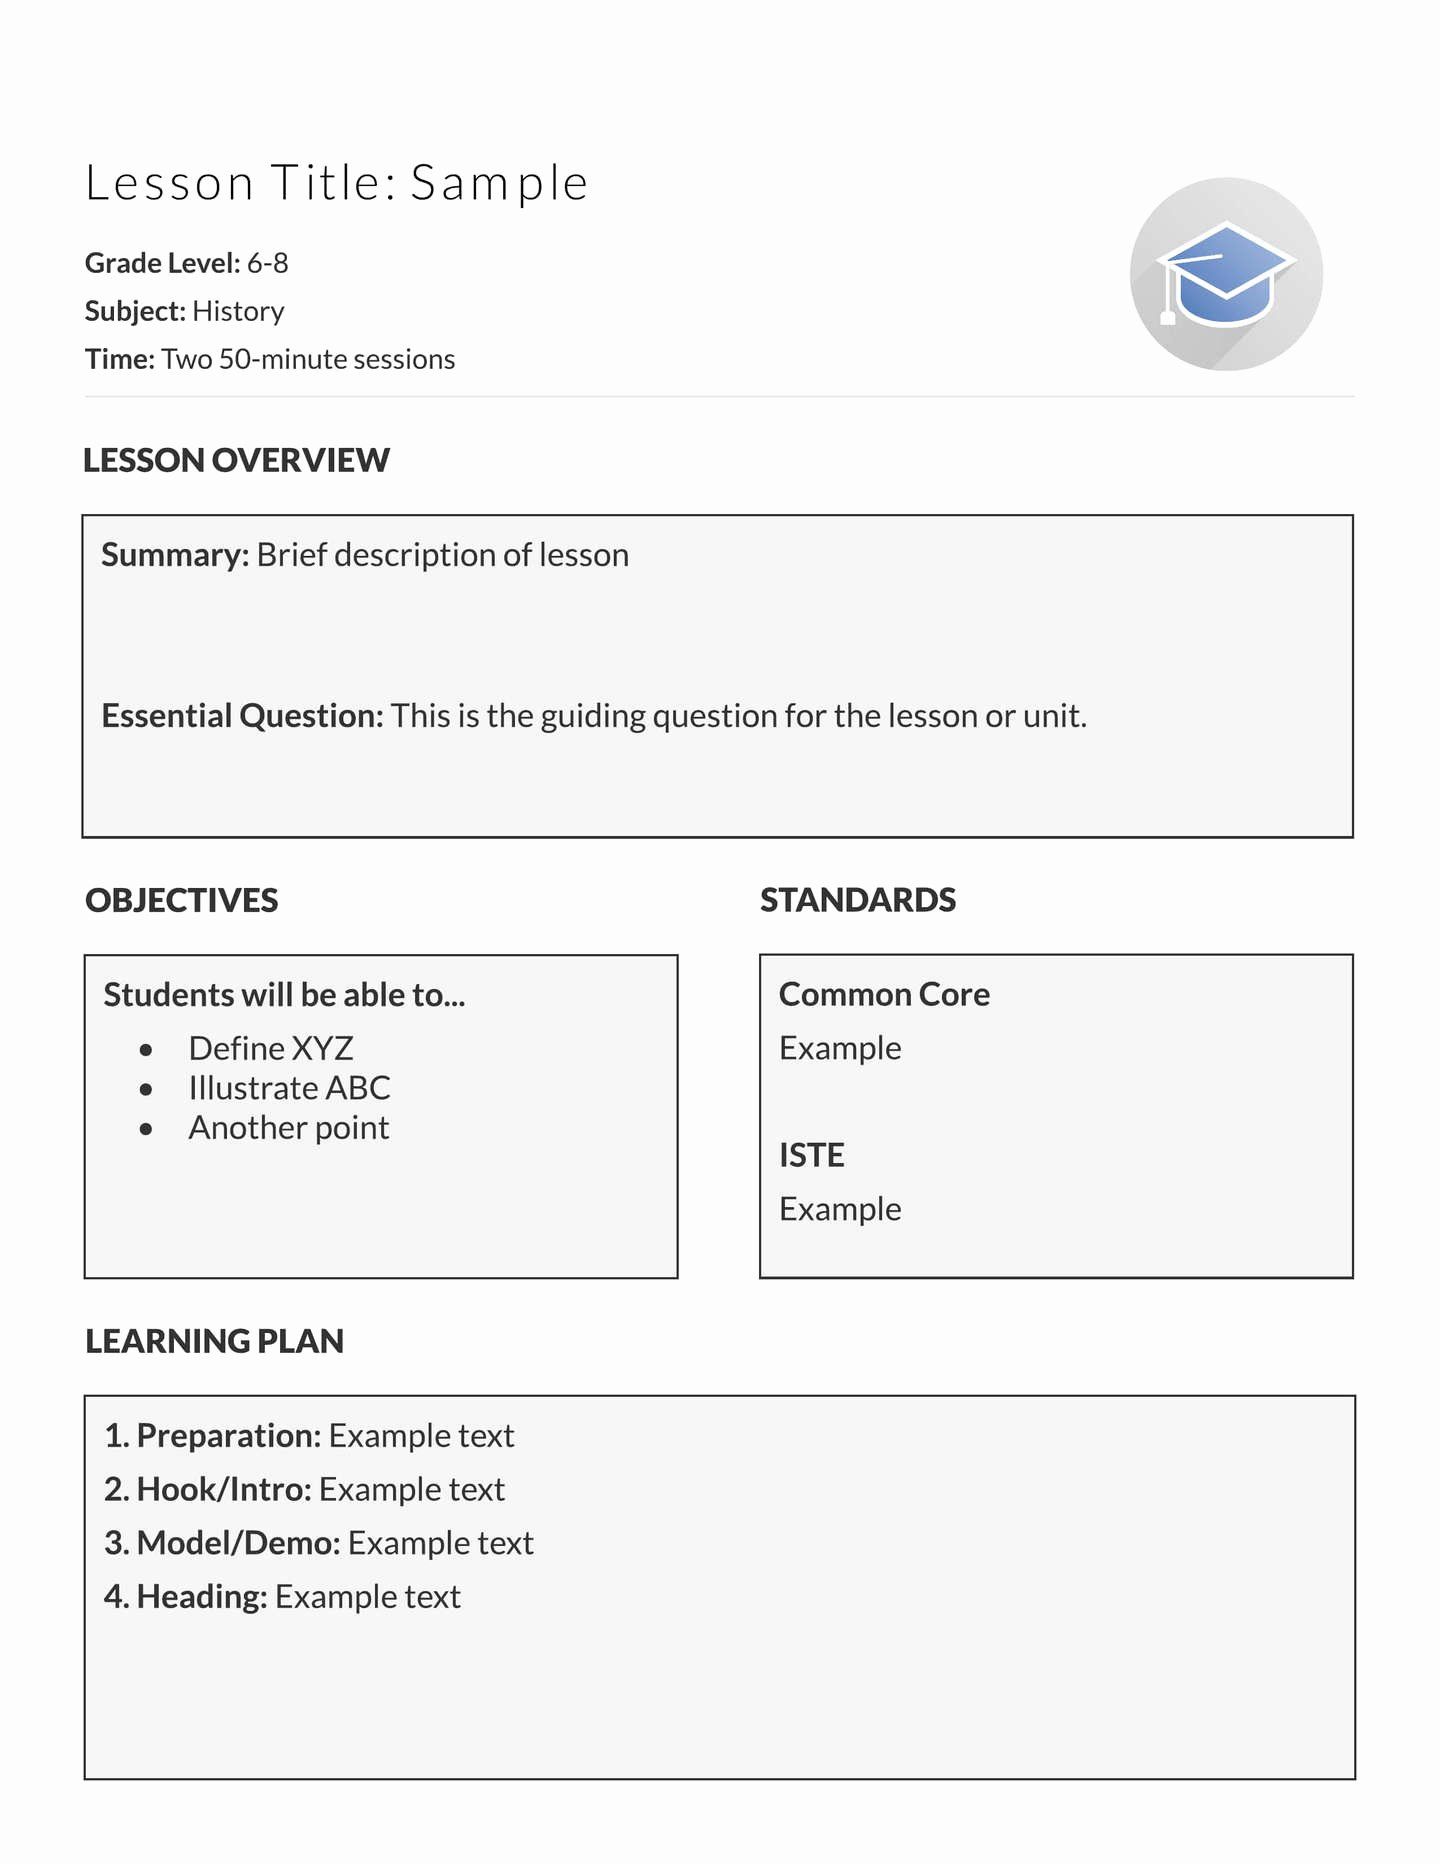 Lesson Plan Outline Template Lovely 5 Free Lesson Plan Templates & Examples Lucidpress